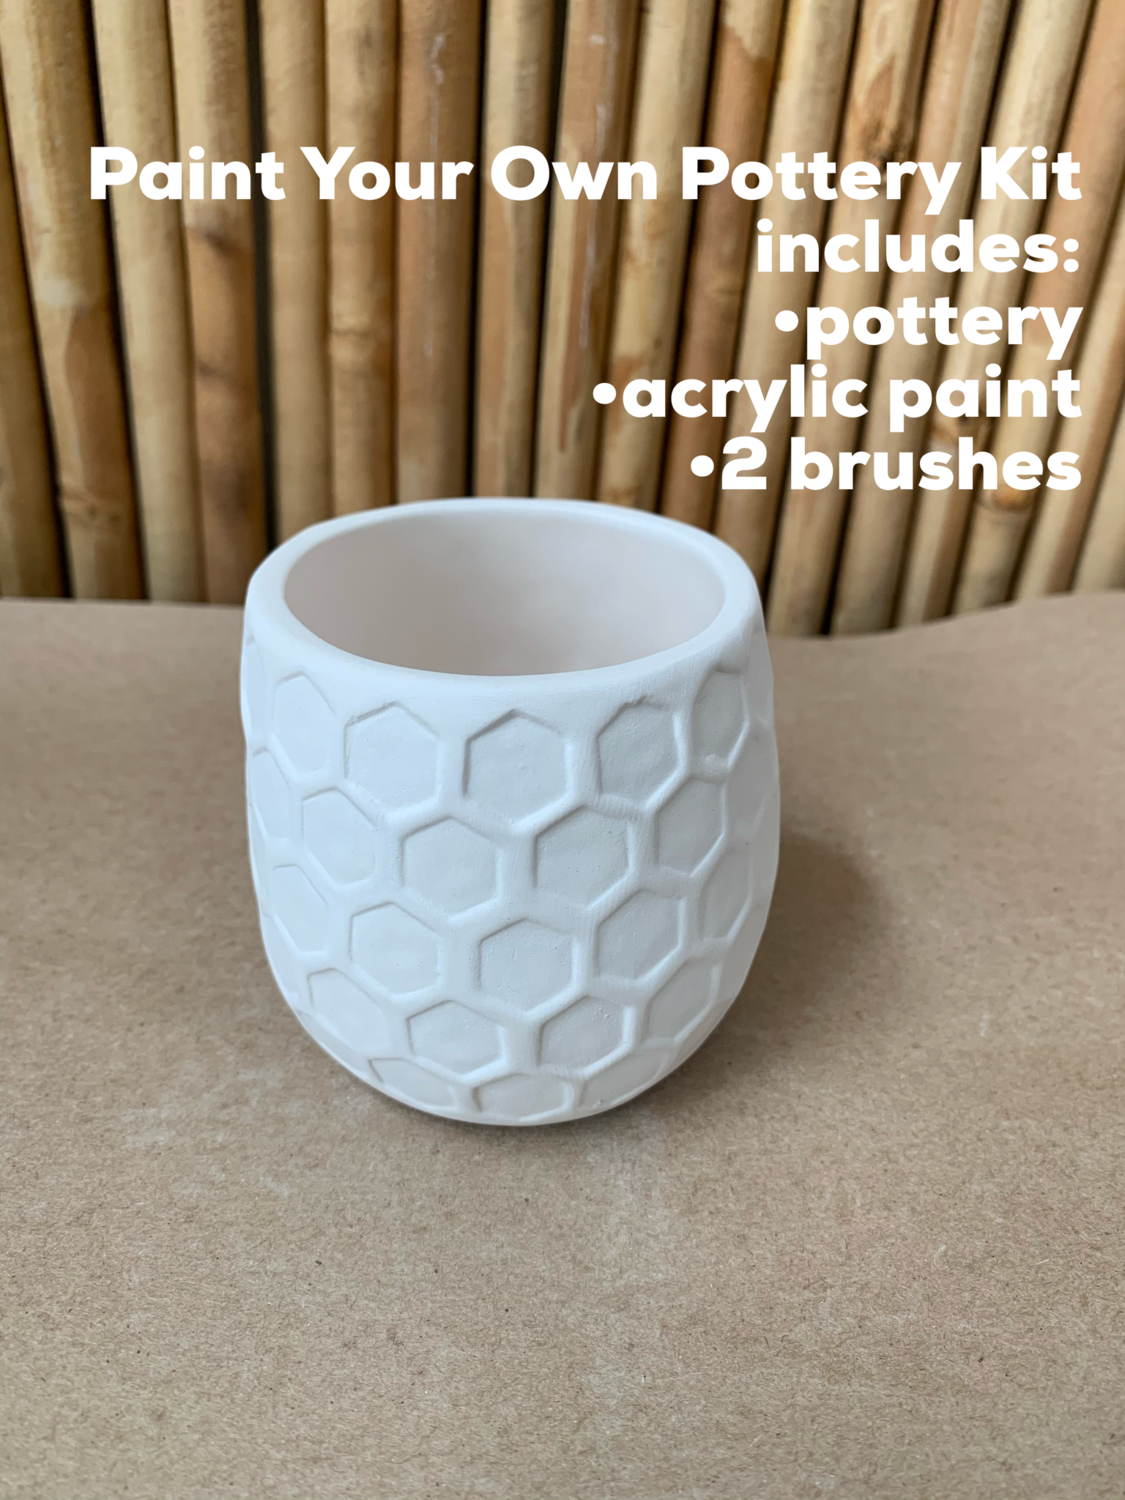 NO FIRE Paint Your Own Pottery Kit -  Ceramic Honeycomb Succulent Planter Acrylic Painting Kit